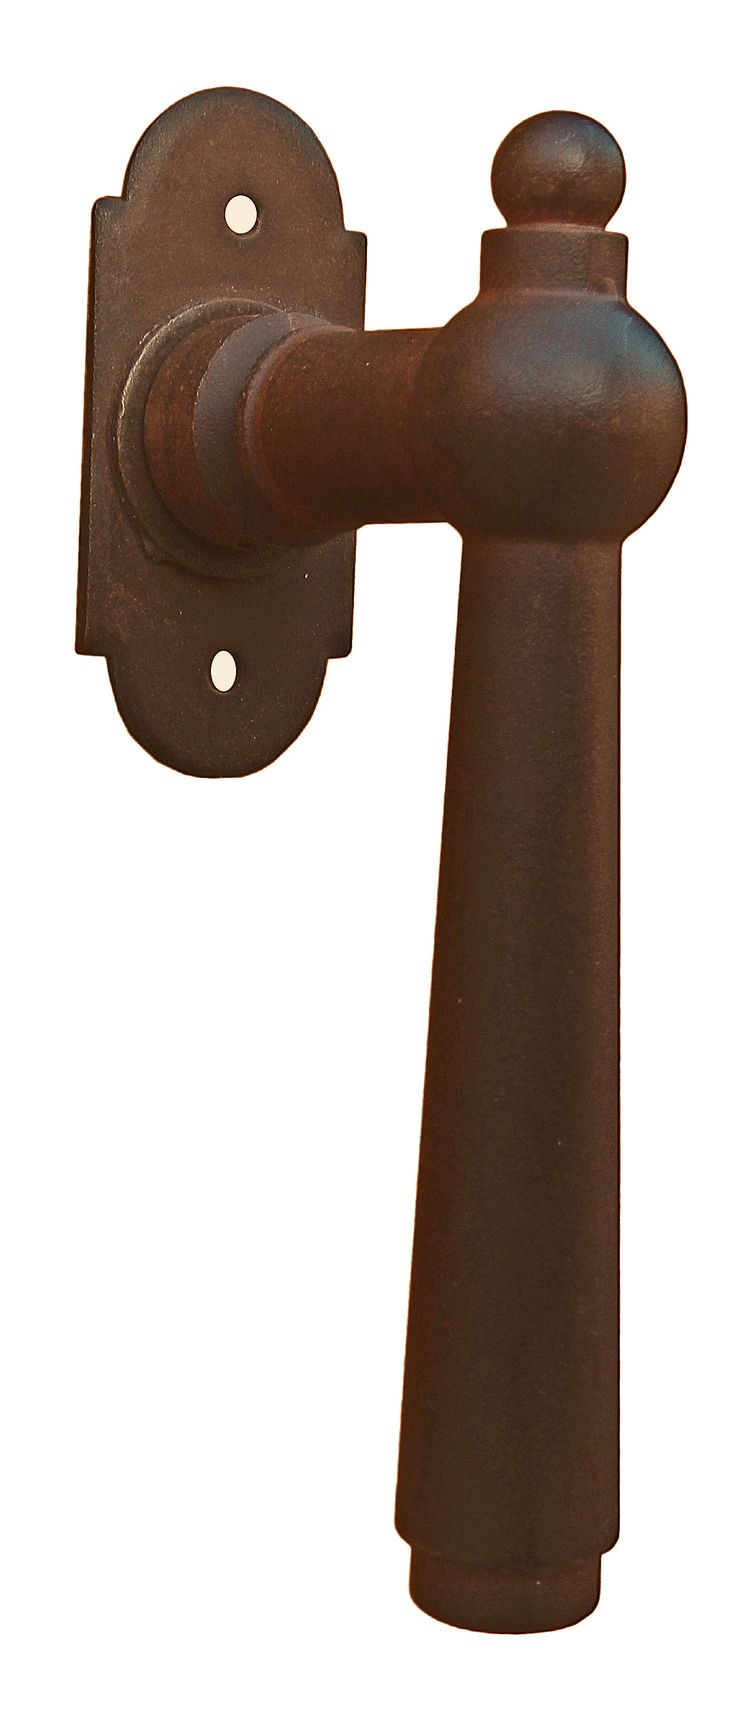 Art.2906. Traditional window handle on raised plate. This handle is available in 13 different finishes. AXE43mm Martellina Galbusera in ferro battuto art.2906